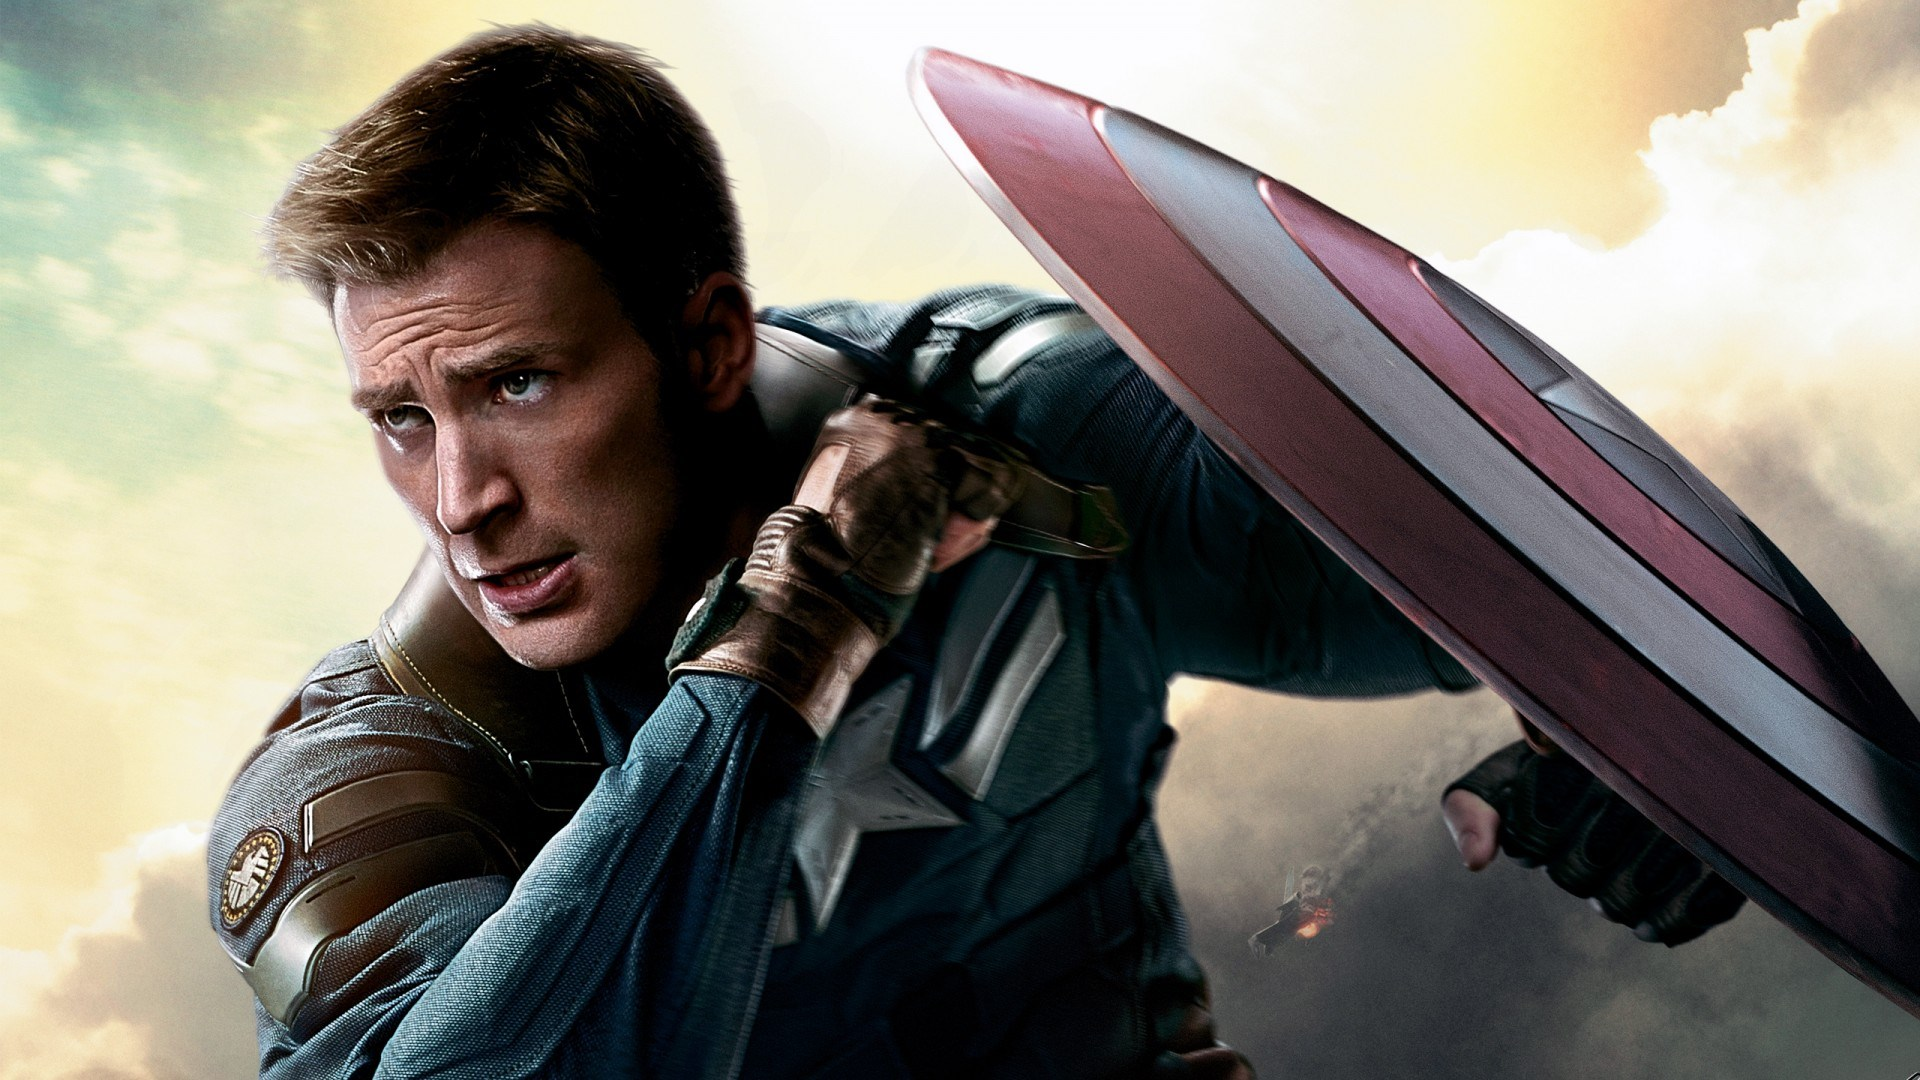 captain-america-High-Definition-Backgrounds-1920-x-1080-kB-wallpaper-wpc9003349